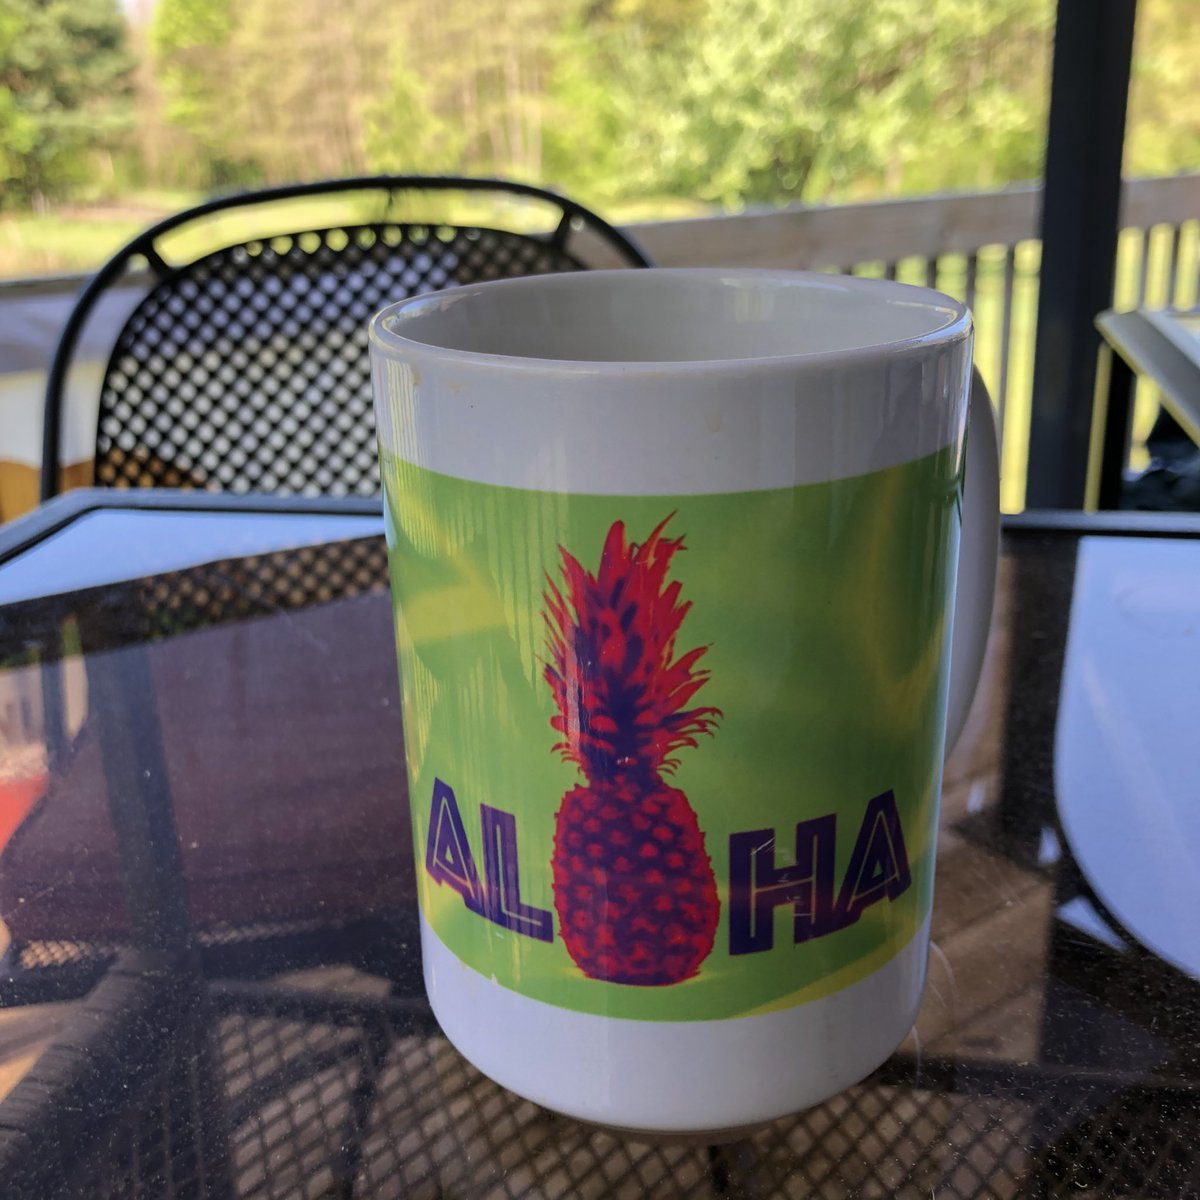 """Enjoying some @SimpaticoCoffee Black and Tan on a gorgeous #puremichigan morning, listening to @IngridAndress album """"Lady Like"""" no-skip like the way albums are supposed to be listened to."""